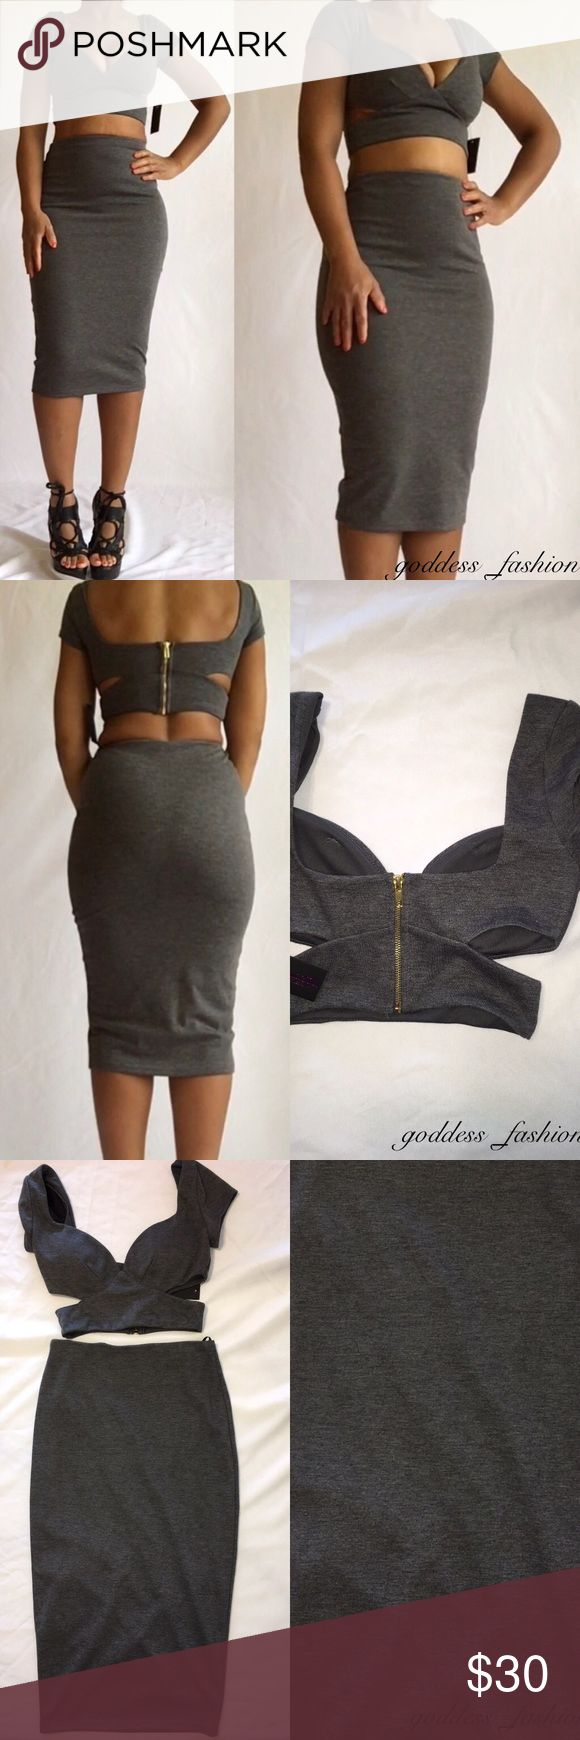 Grey Two Piece Skirt Set Hot Miami styles grey pencil skirt set Brand new with tags.95% polyester ,5% spandex Hot miami styles Skirts Skirt Sets